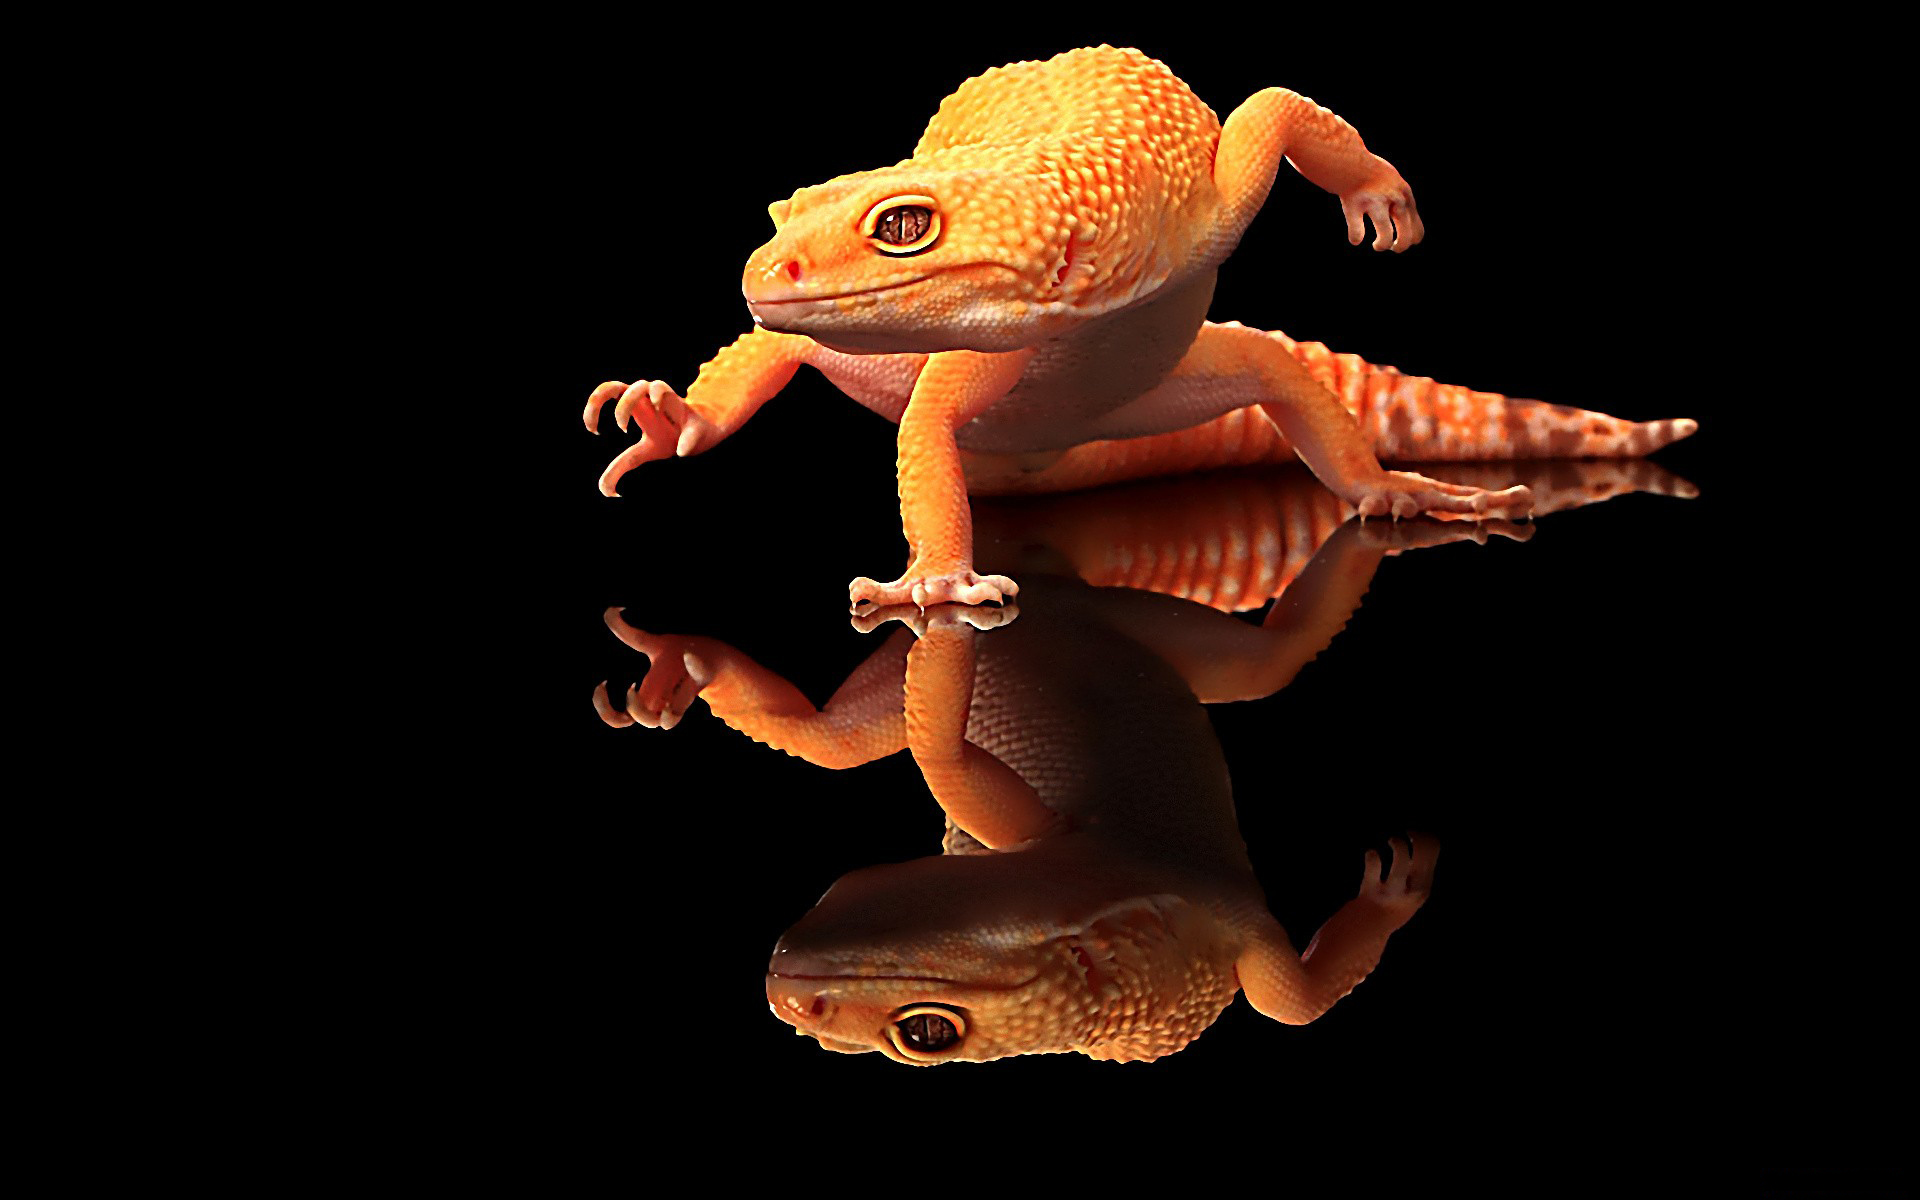 Gecko HD Wallpapers